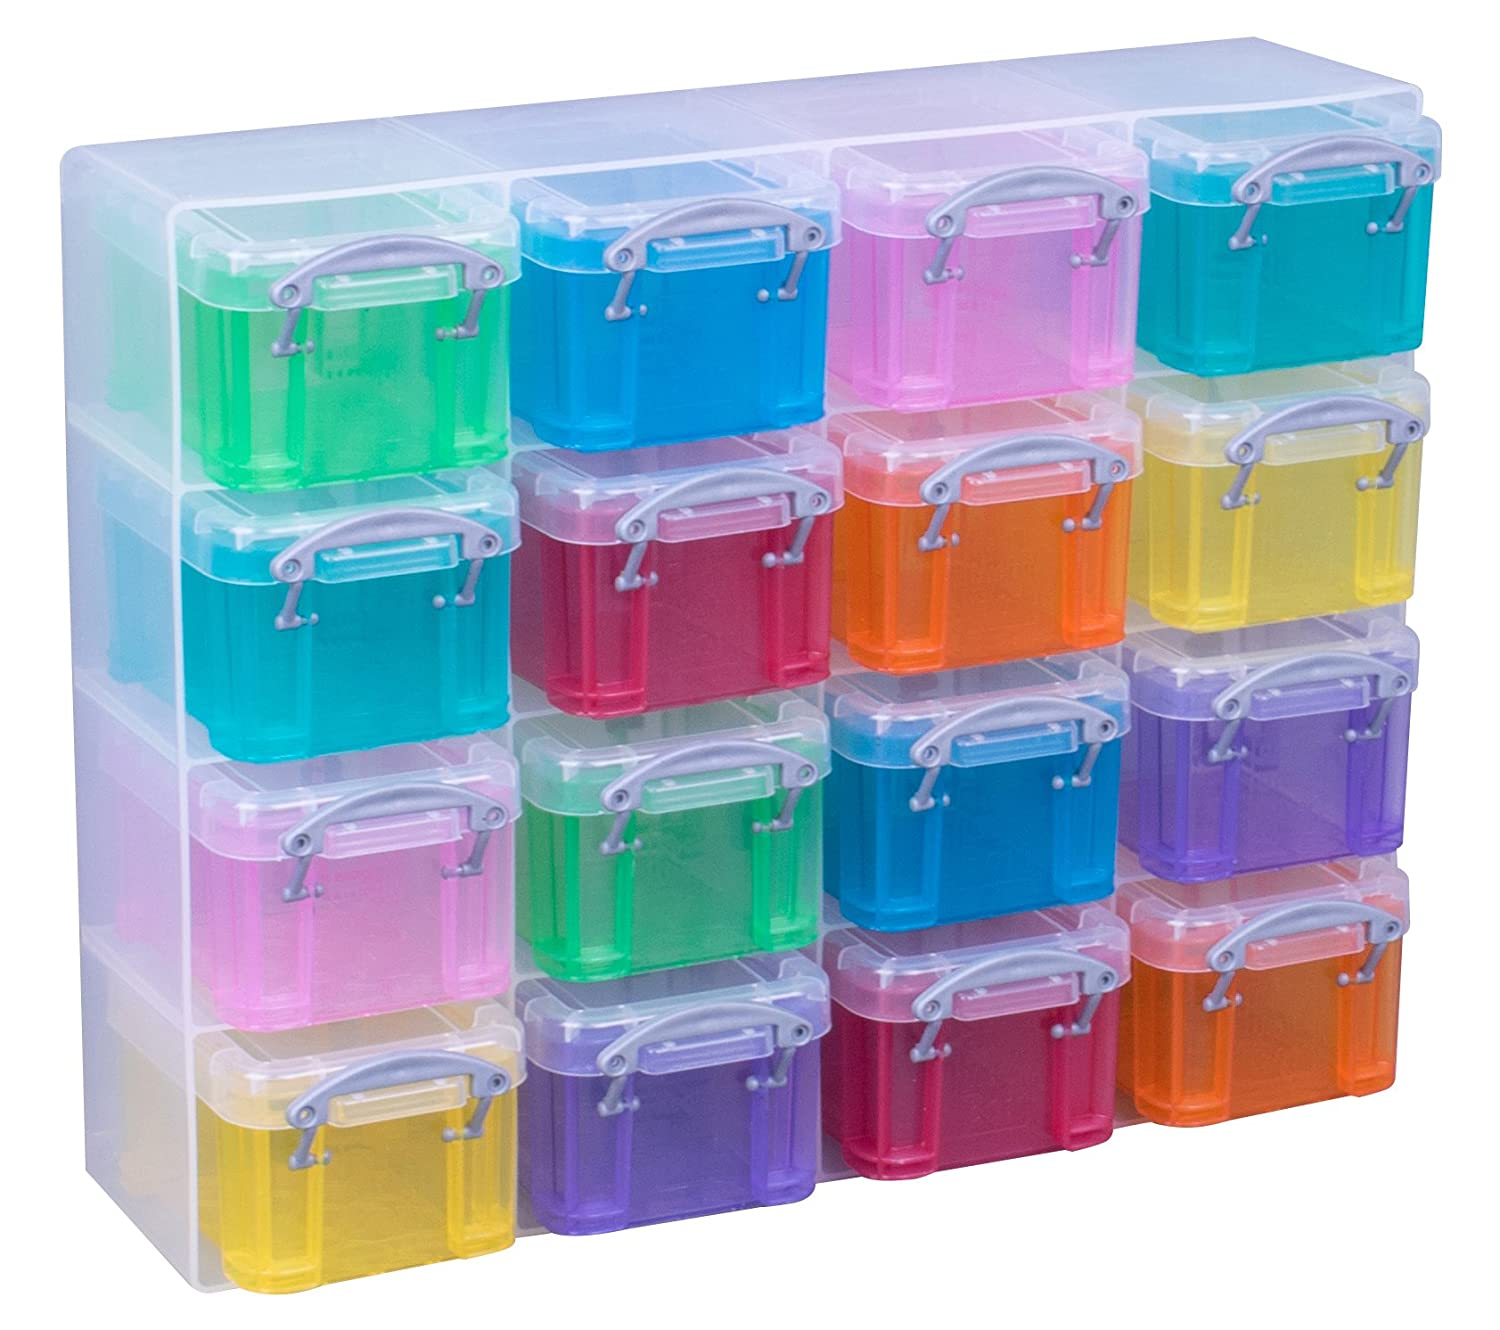 Really Useful Box Organiser, 16 x 0.3 Litre Storage Boxes in a Clear Plastic Organiser and Assorted Coloured Boxes Really Useful Products Ltd 20137